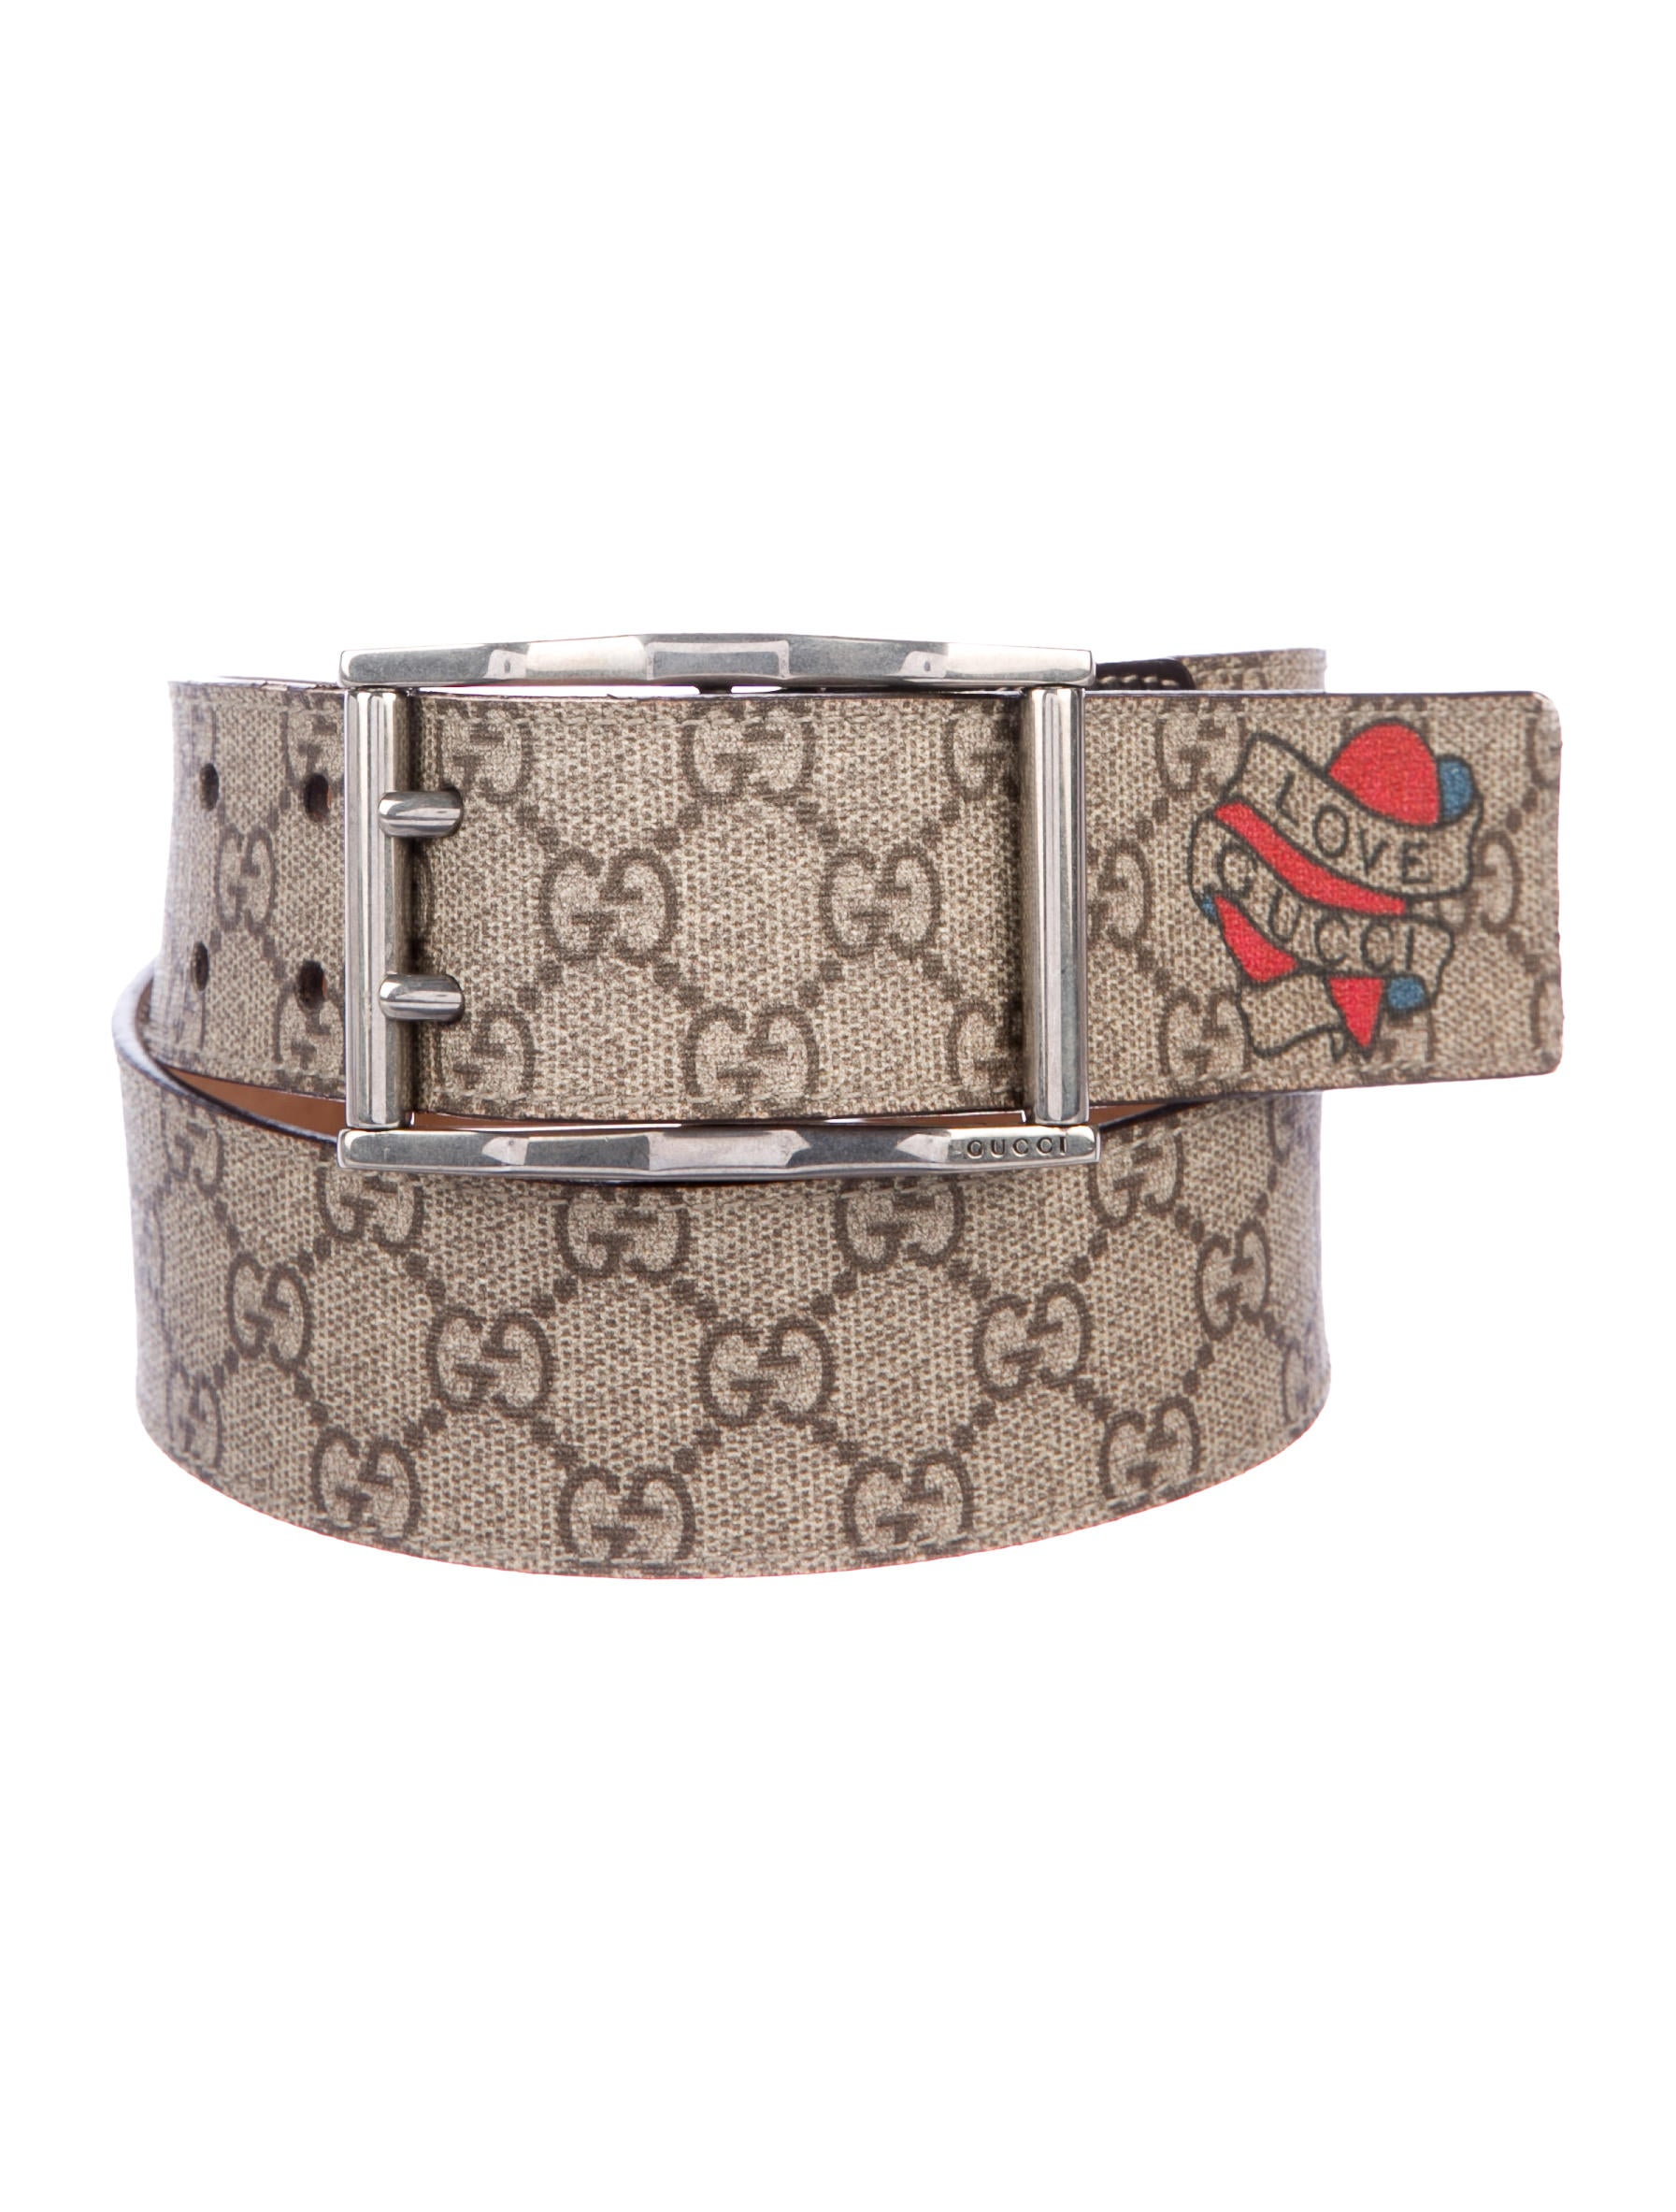 47309b3c5 Gucci GG Love Gucci Belt - Accessories - GUC295084 | The RealReal